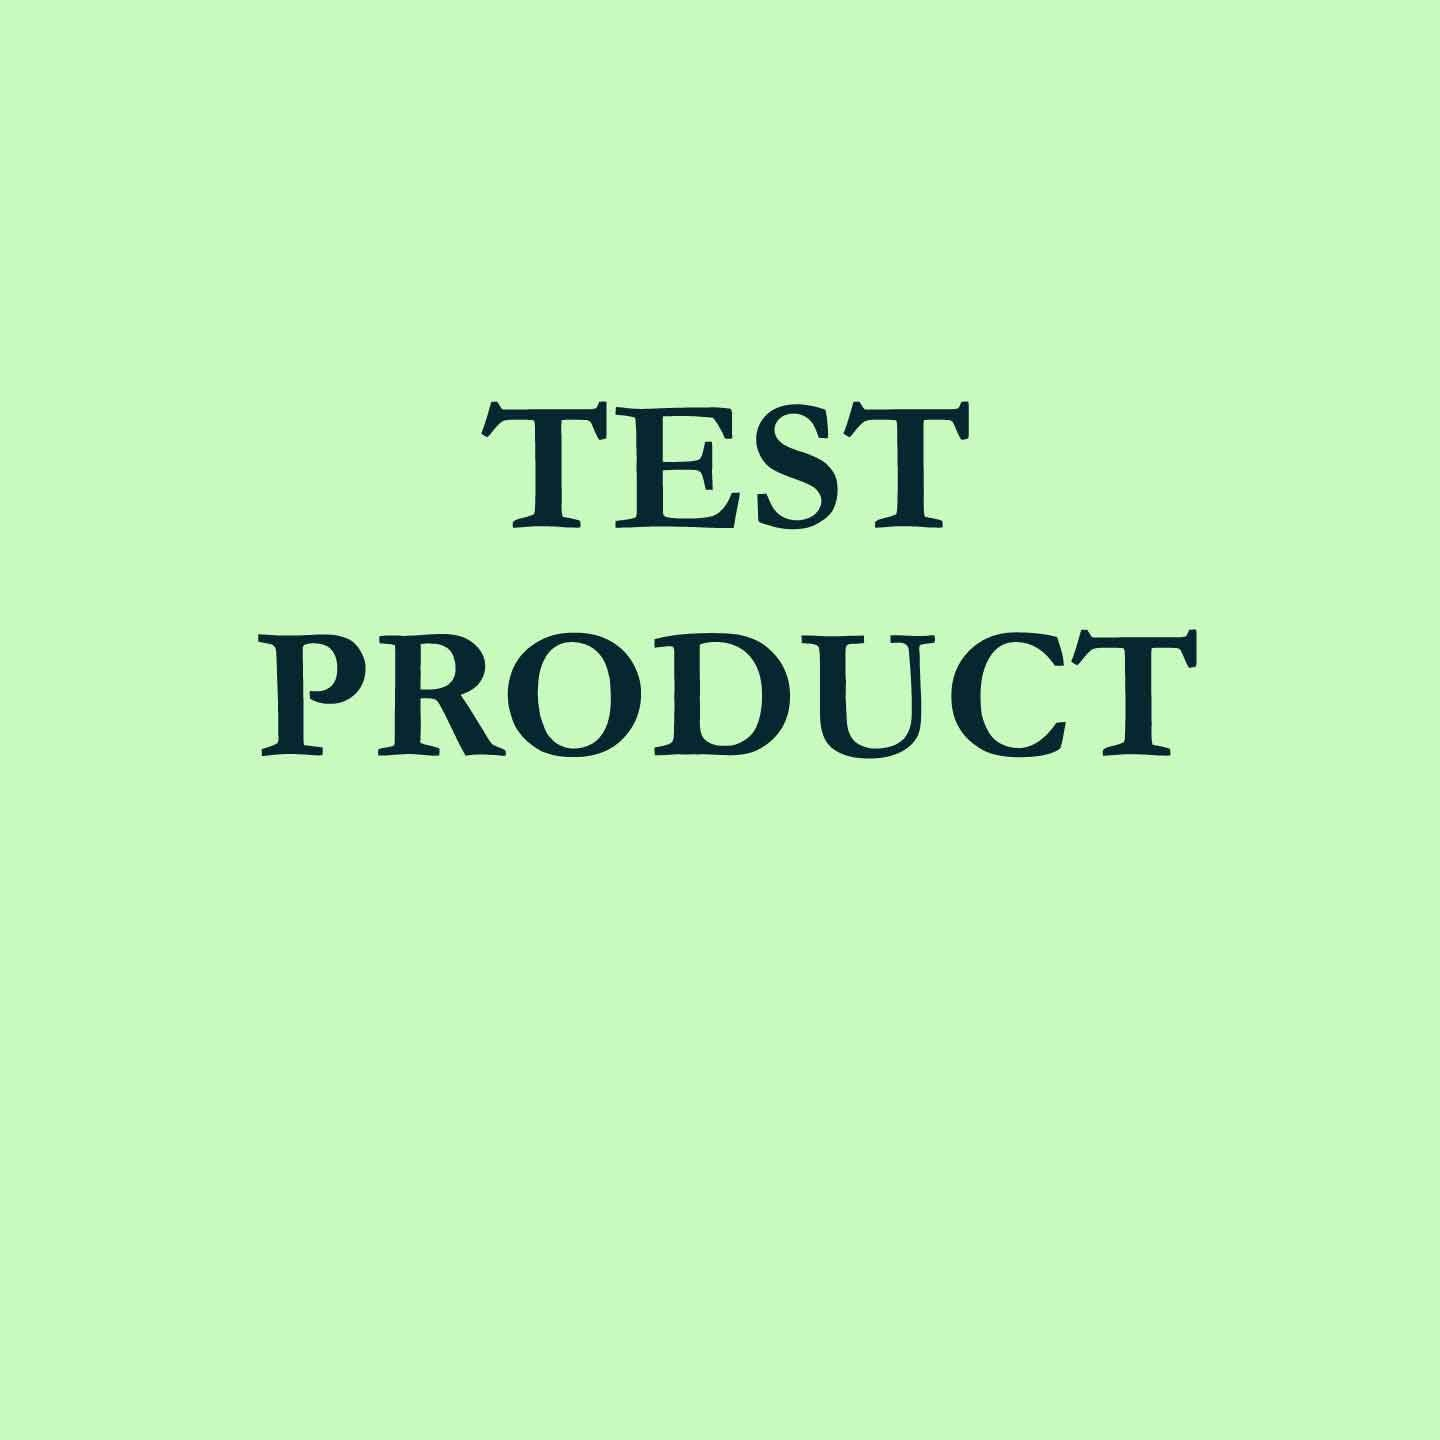 Test Product - For testing ONLY